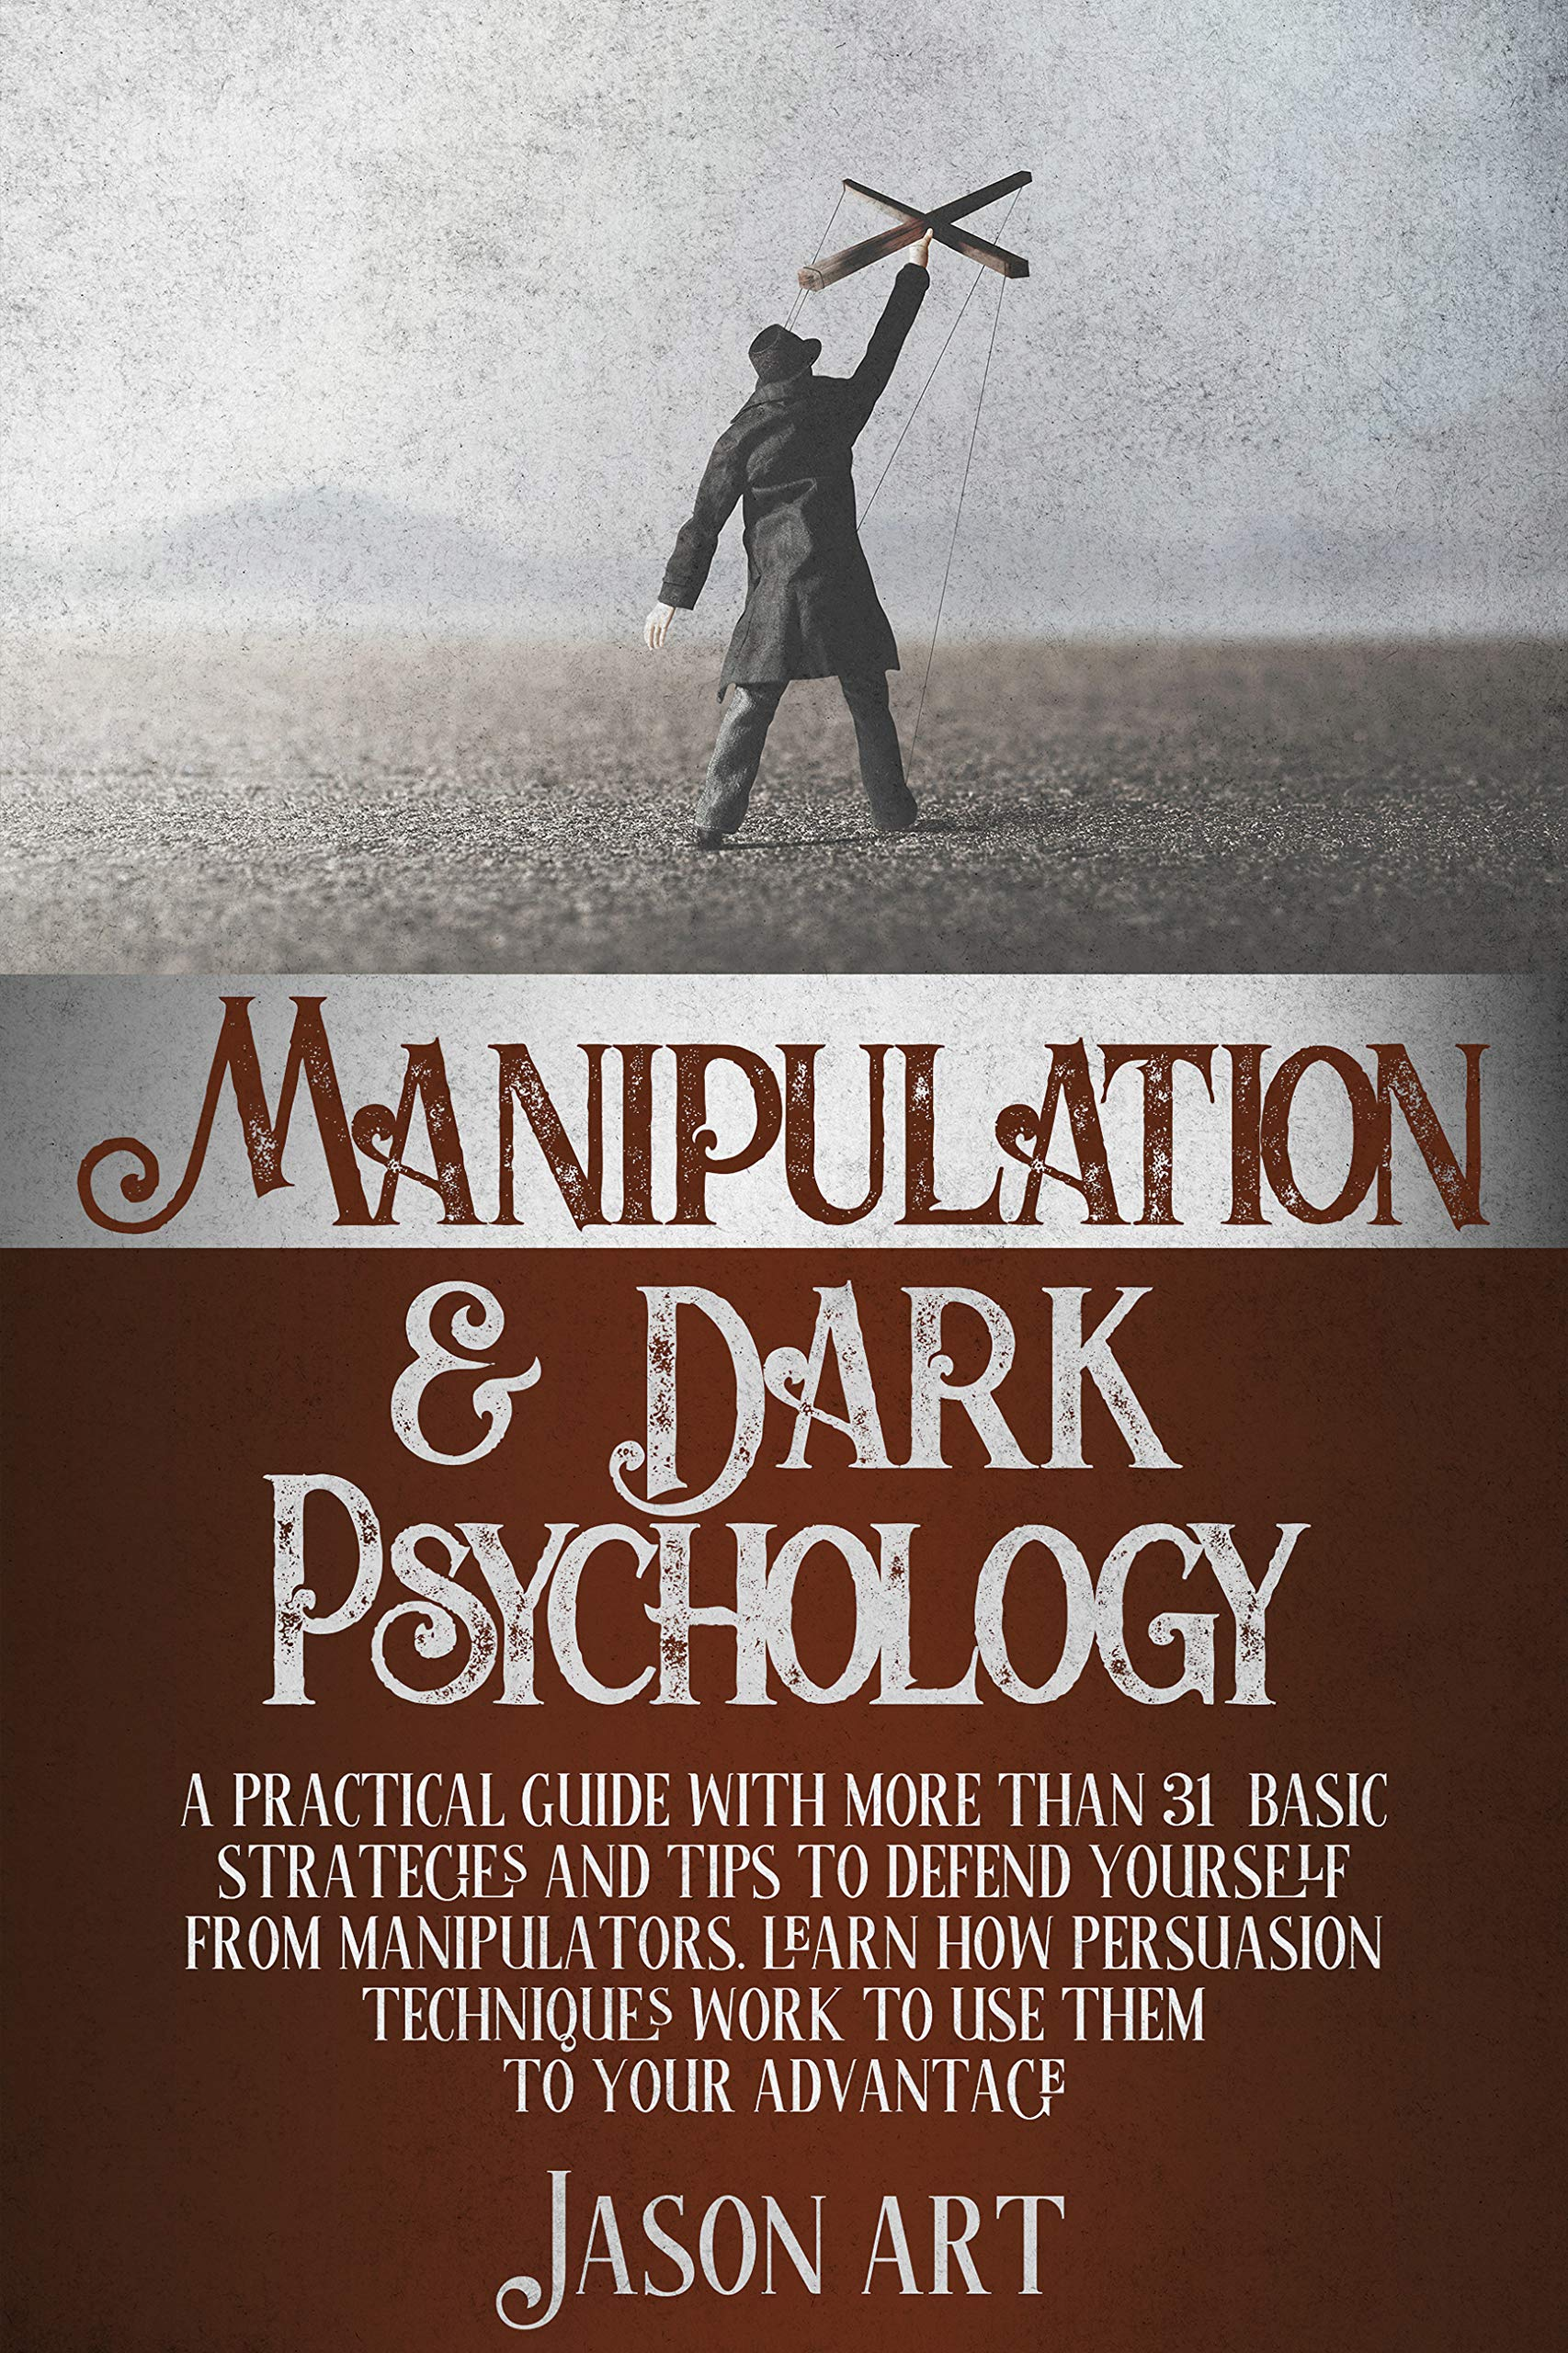 MANIPULATION AND DARK PSYCHOLOGY: A Practical Guide With More Than 31 Basic Strategies and Tips to Defend Yourself From Manipulators.Learn how Persuasion Techniques Work to Use Them to Your Advantage